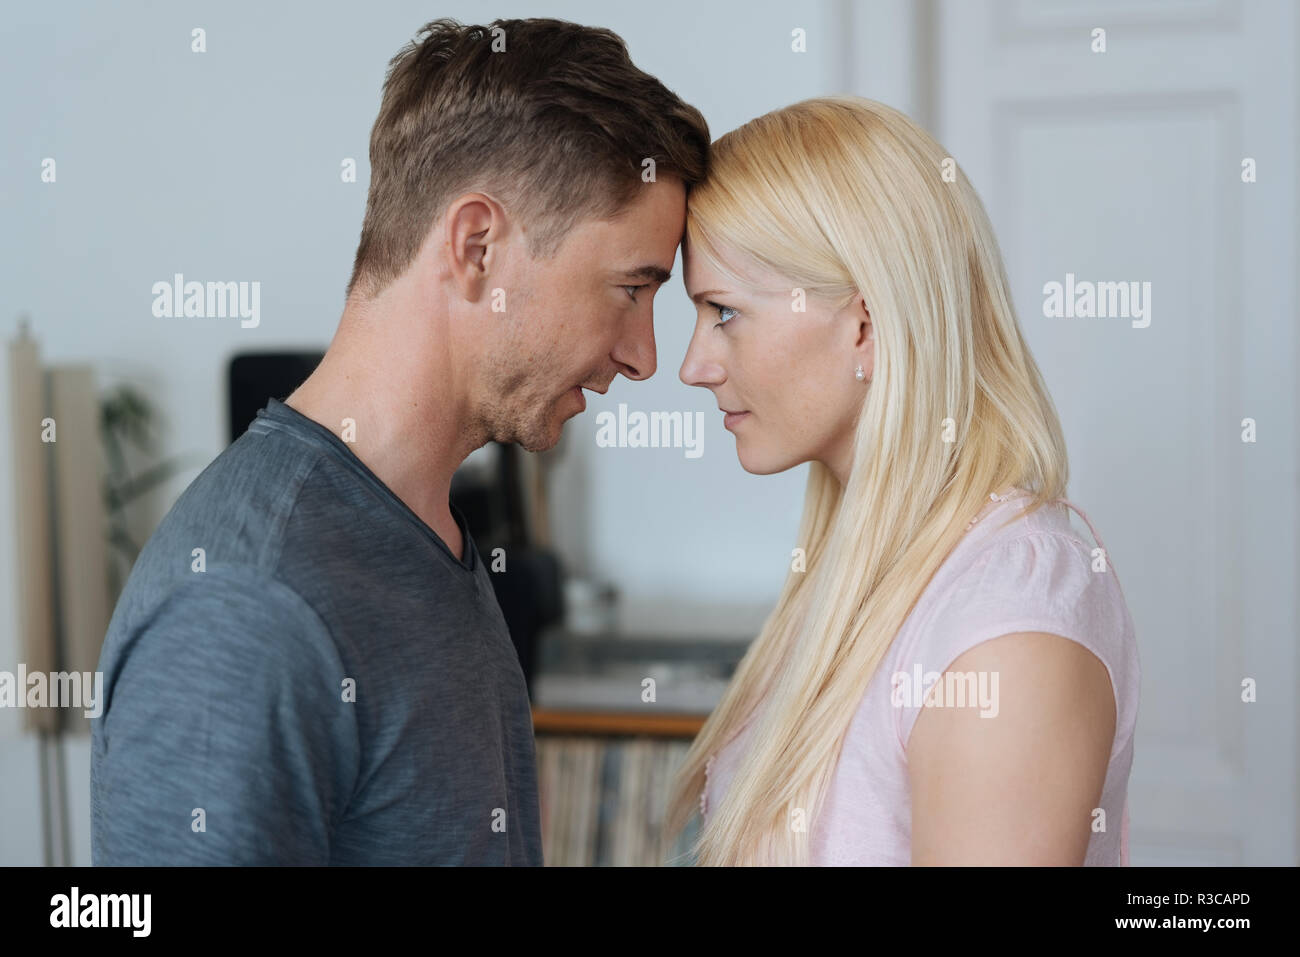 Young couple having a disagreement standing head to head glaring at each other indoors at home - Stock Image